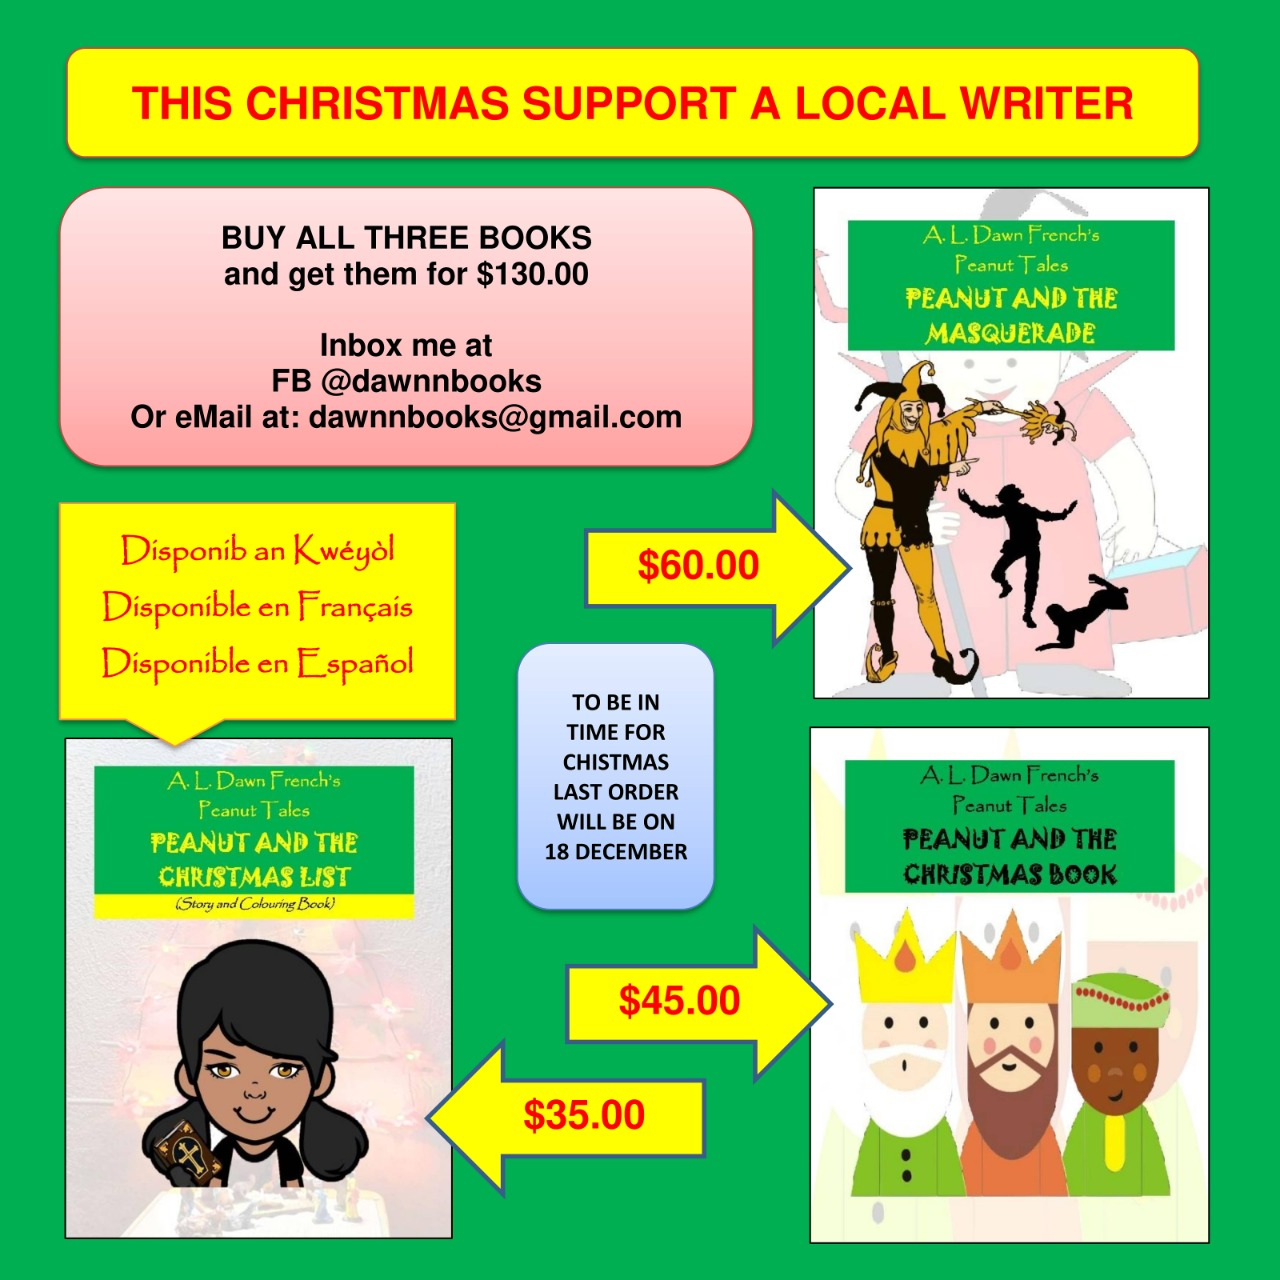 Buy a book for Christmas! Local St Lucian author A.L. Dawn French has a fabulous Christmas special on